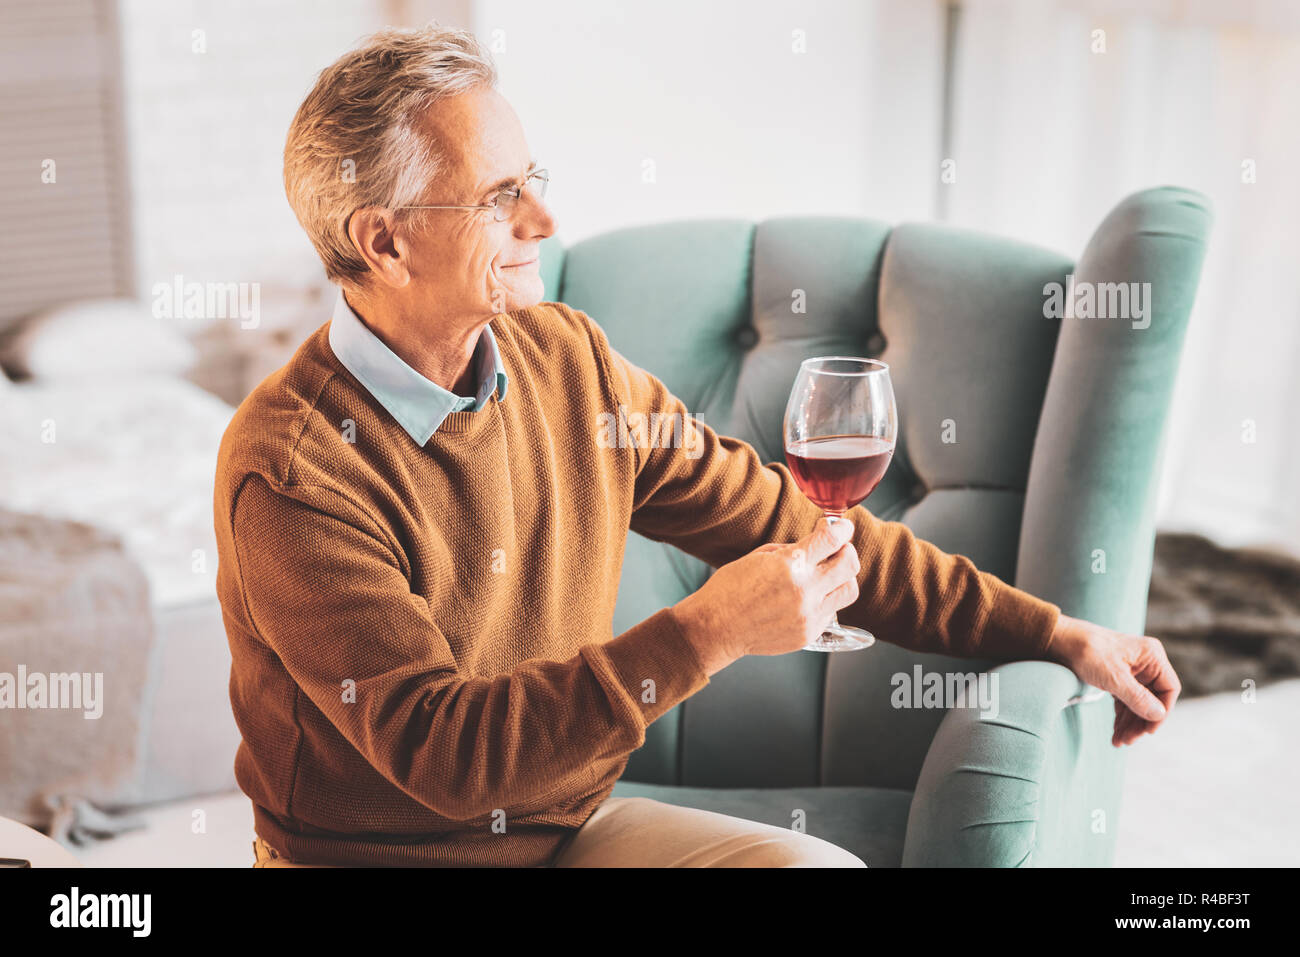 Drinking wine. Loving husband feeling respected while drinking tasty wine with his caring family - Stock Image